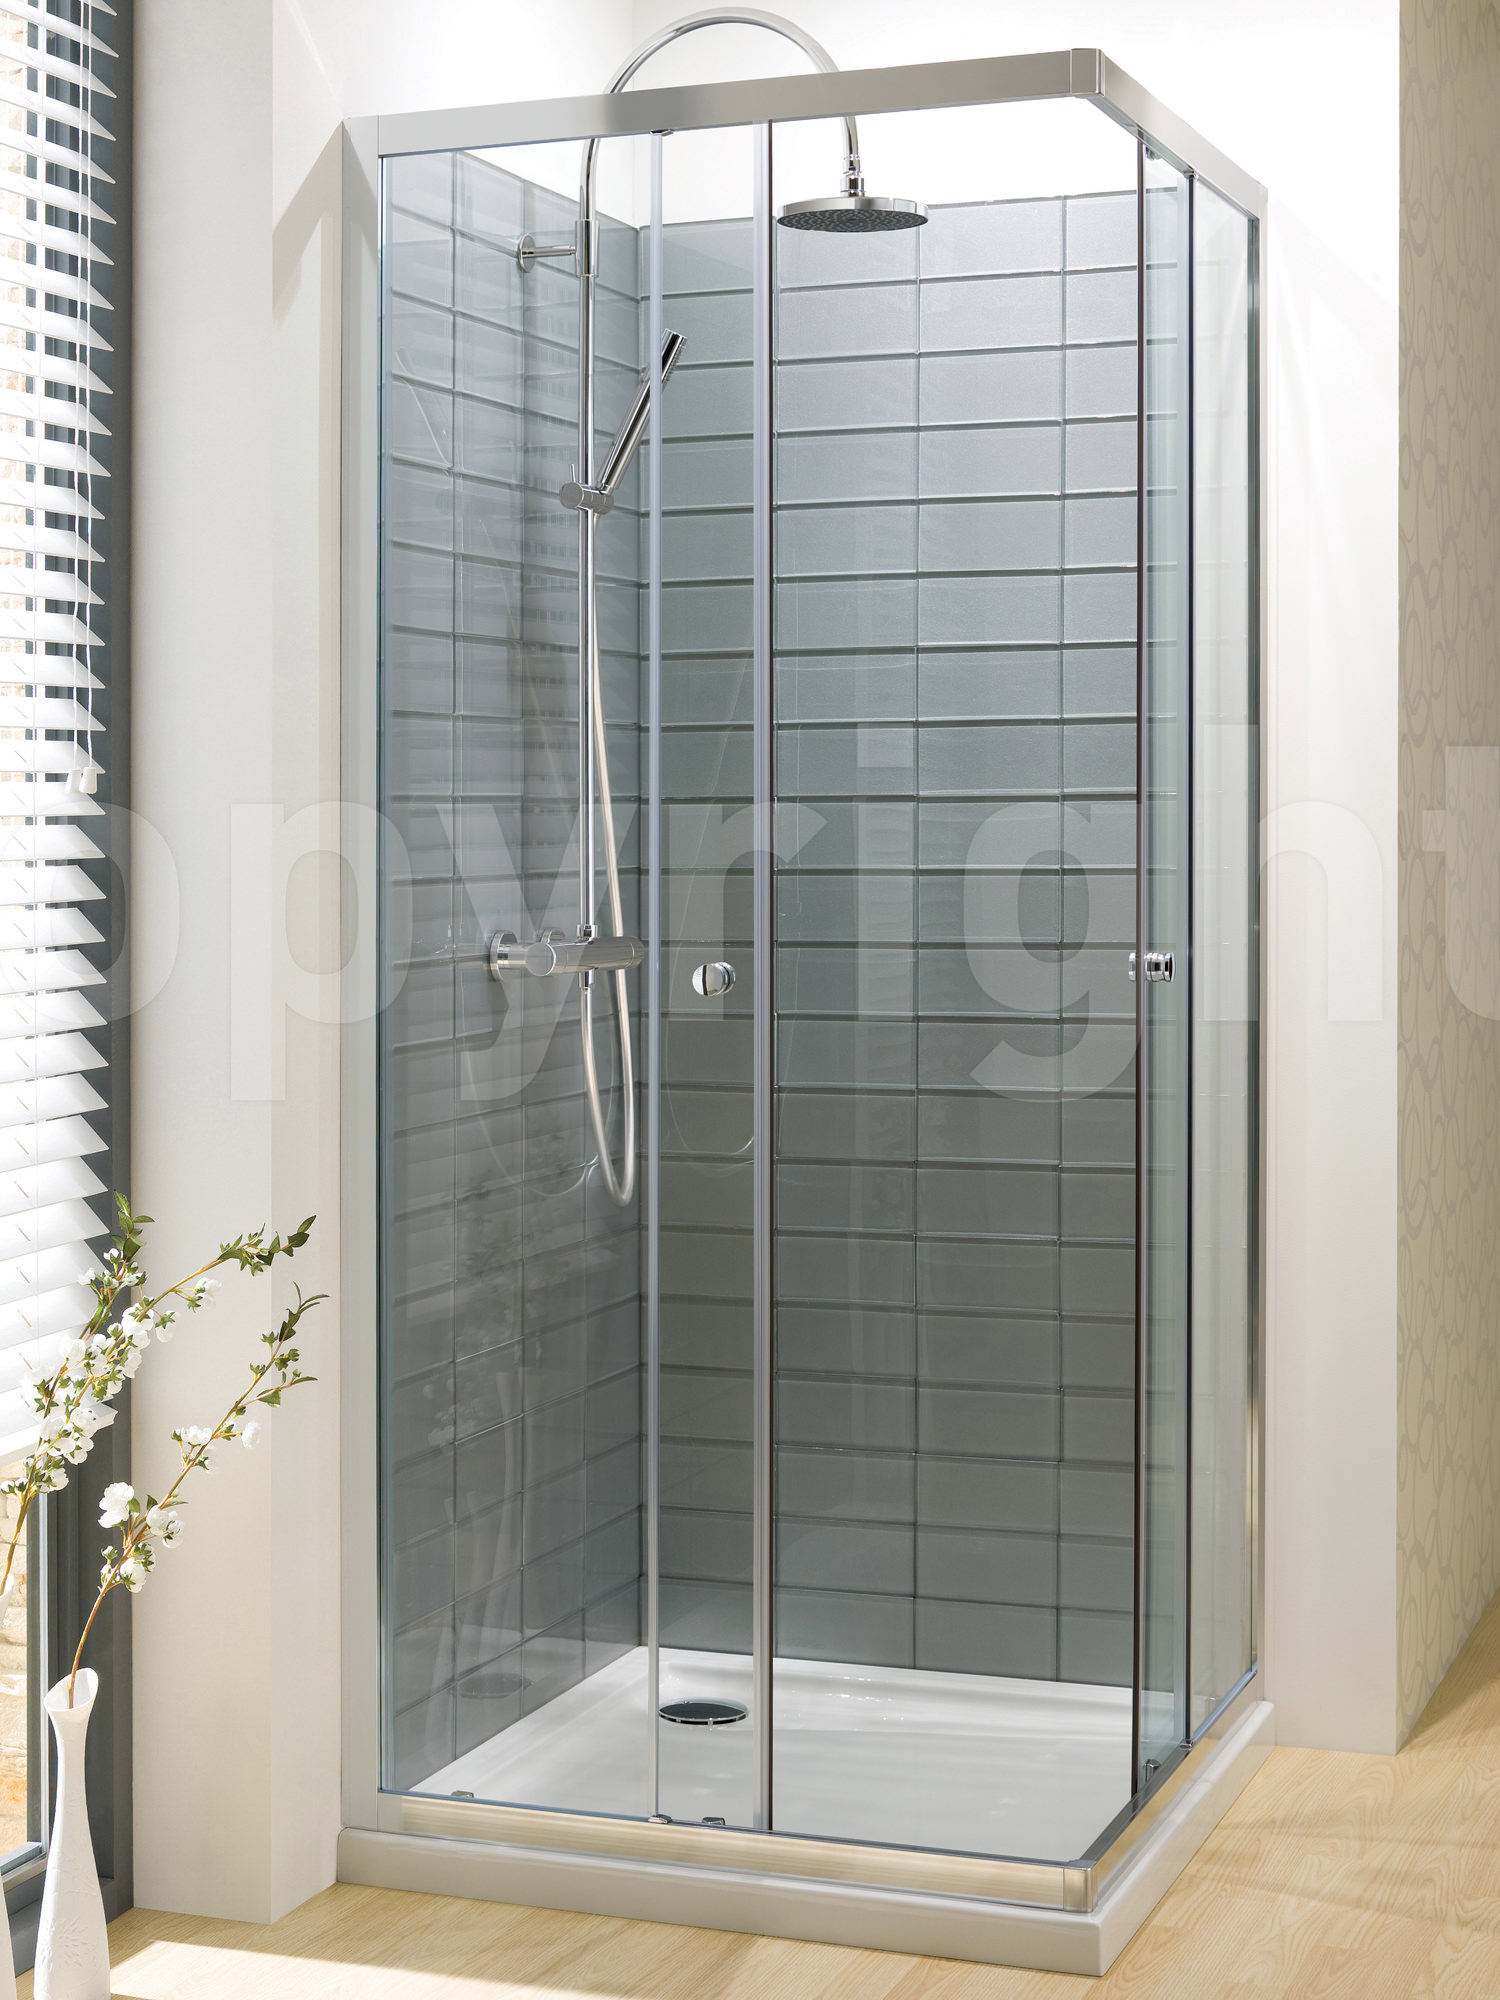 Modern Kitchen Design In India Simpsons Edge Corner Entry Shower Enclosure 760mm